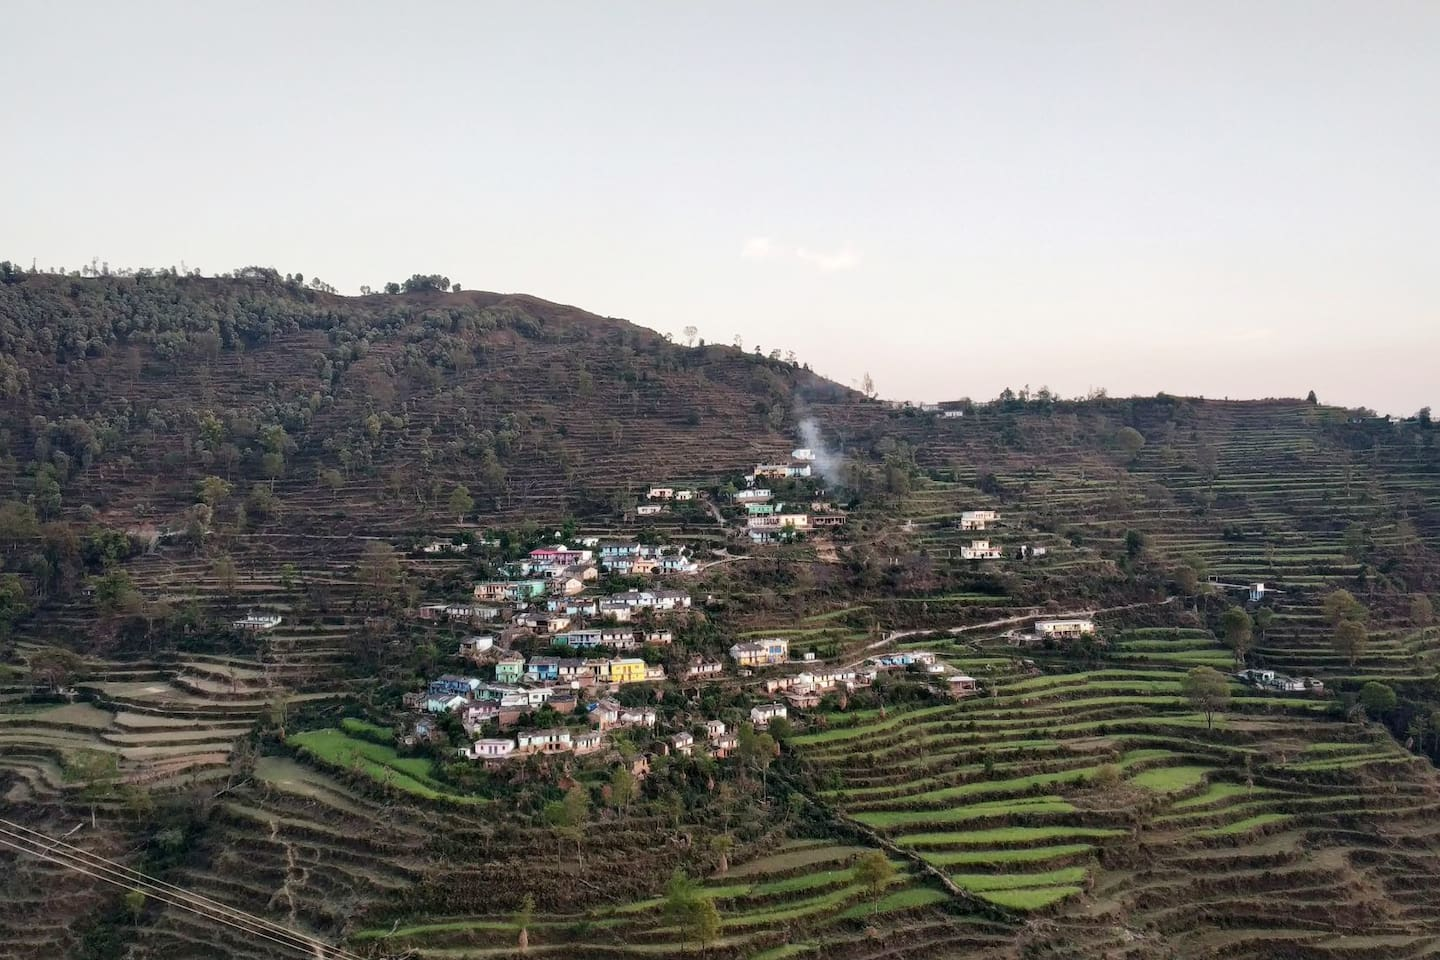 Village Isoti as seen from opposing feature and Village Galha.